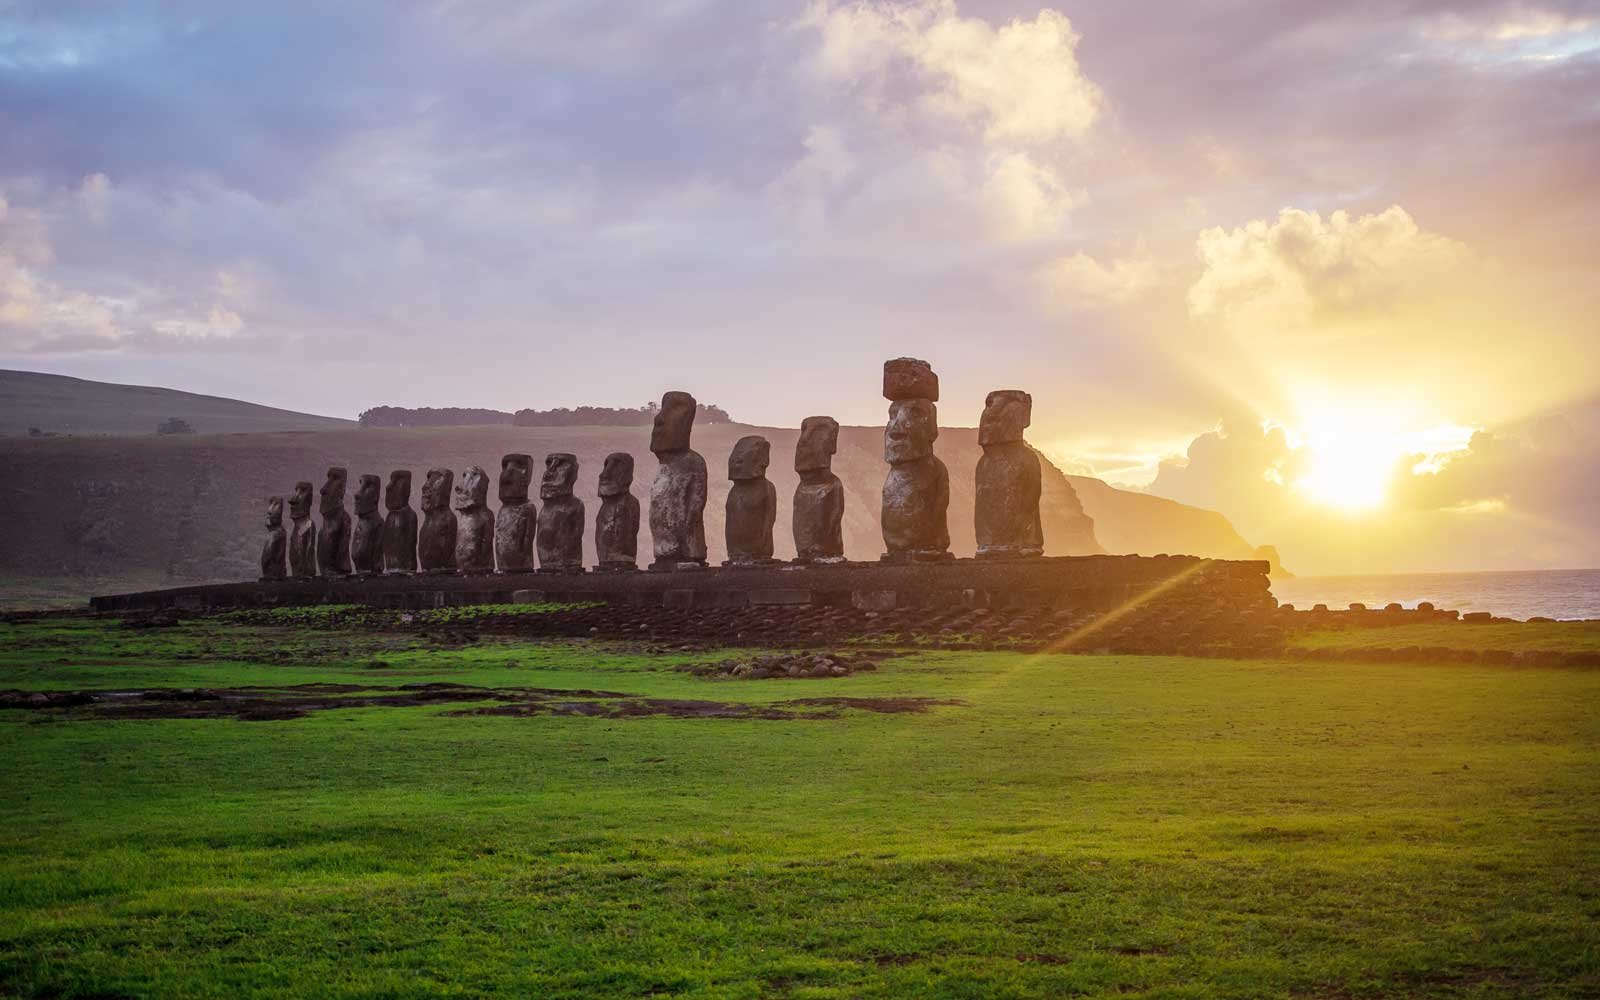 Things to See—Other Than the Moai